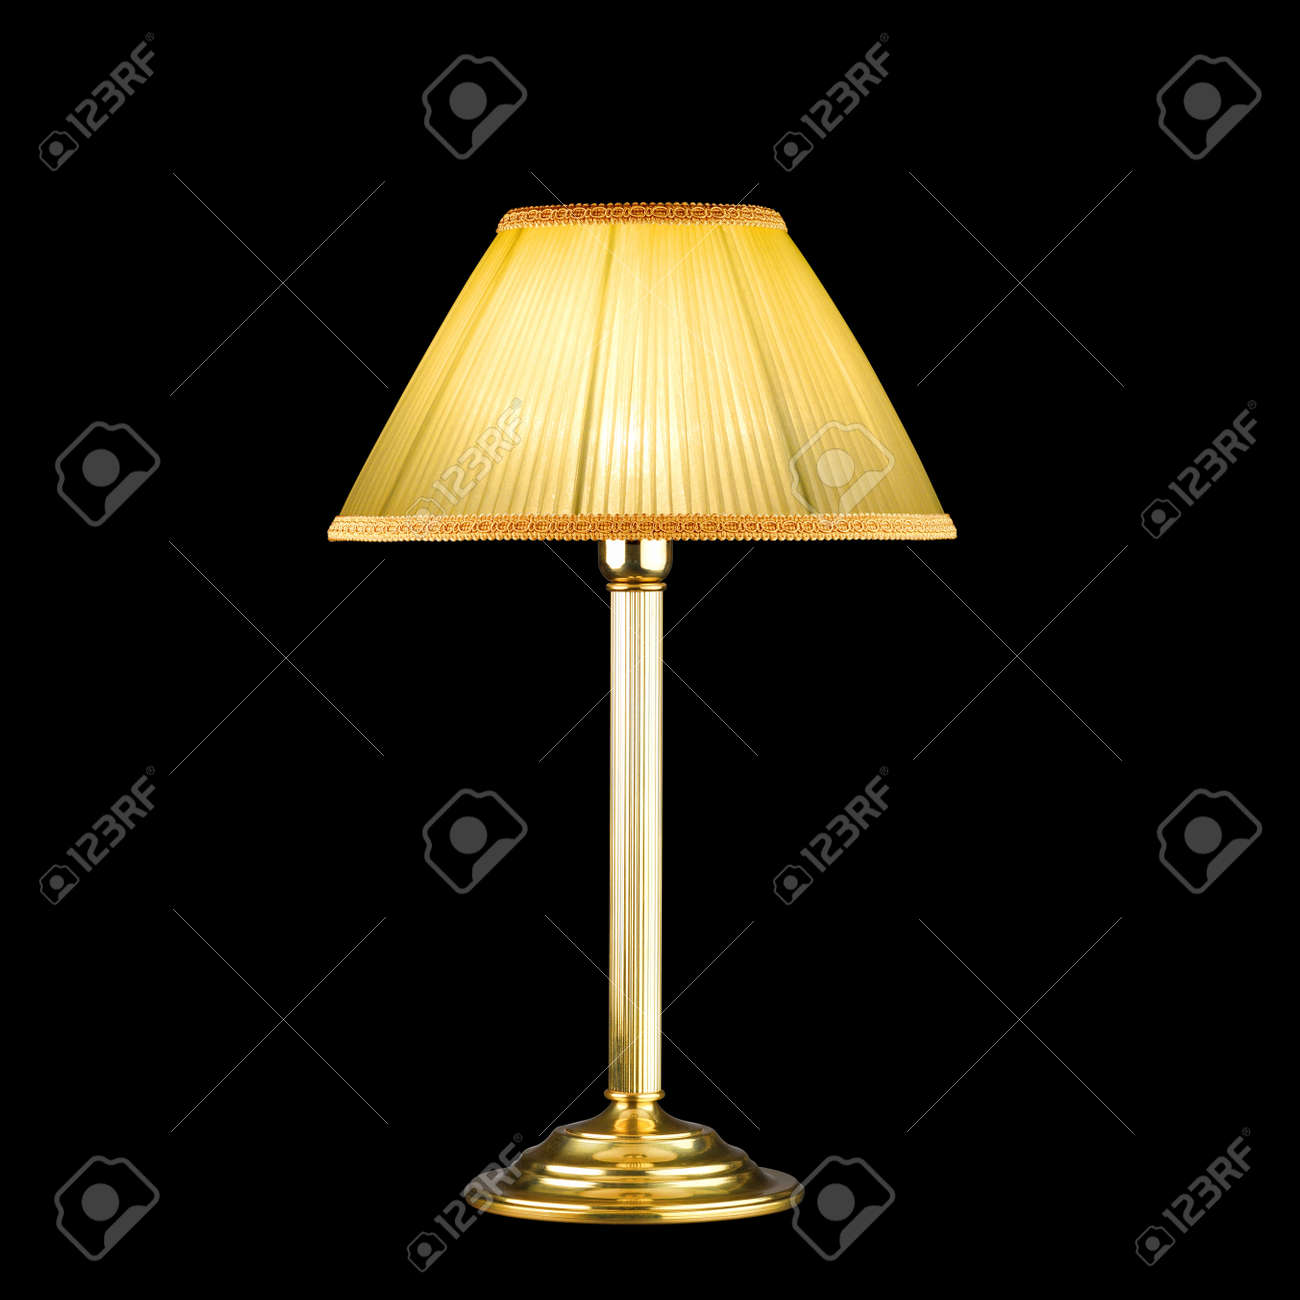 vintage table lamp isolated on black Stock Photo - 14945498